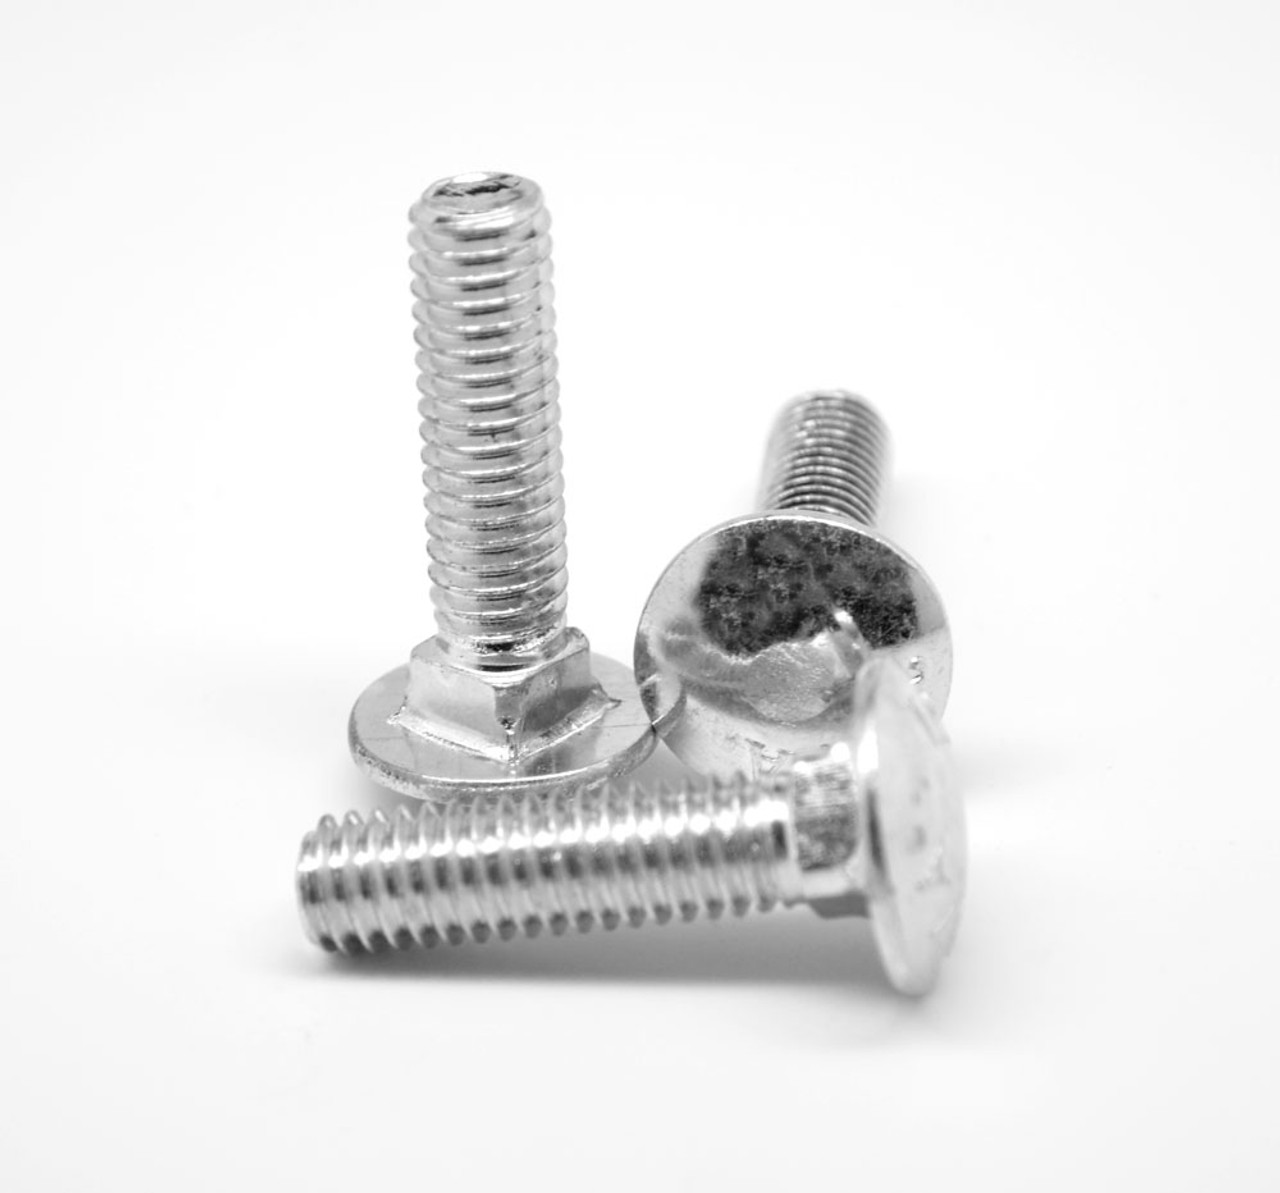 """#10-24 x 3"""" (FT) Coarse Thread A307 Grade A Carriage Bolt Low Carbon Steel Zinc Plated"""